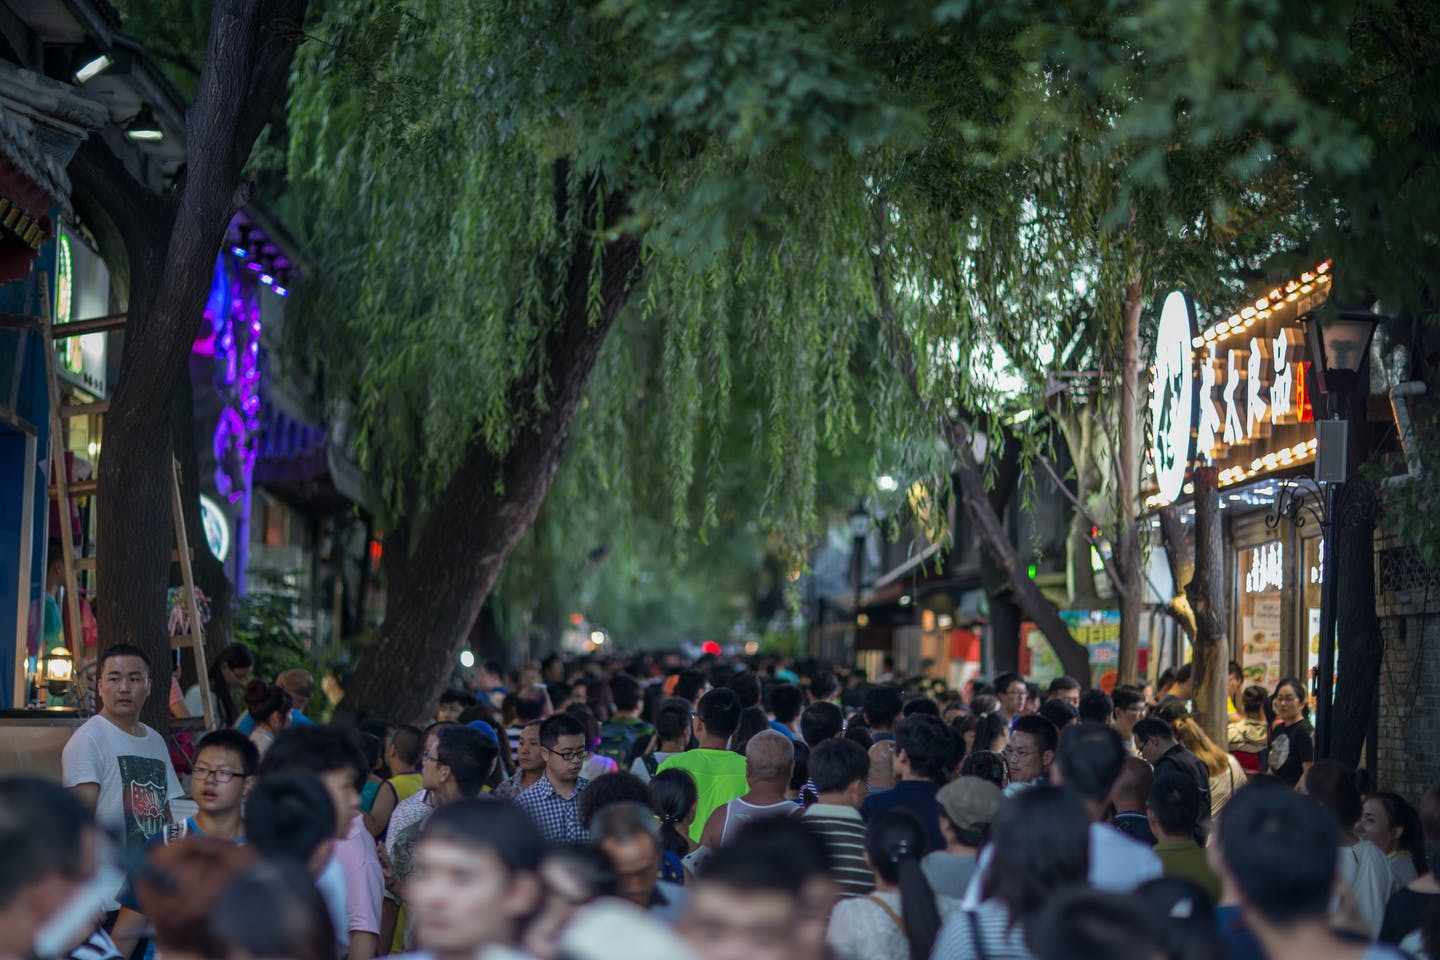 Crowds at Nanluoguxiang, Beijing